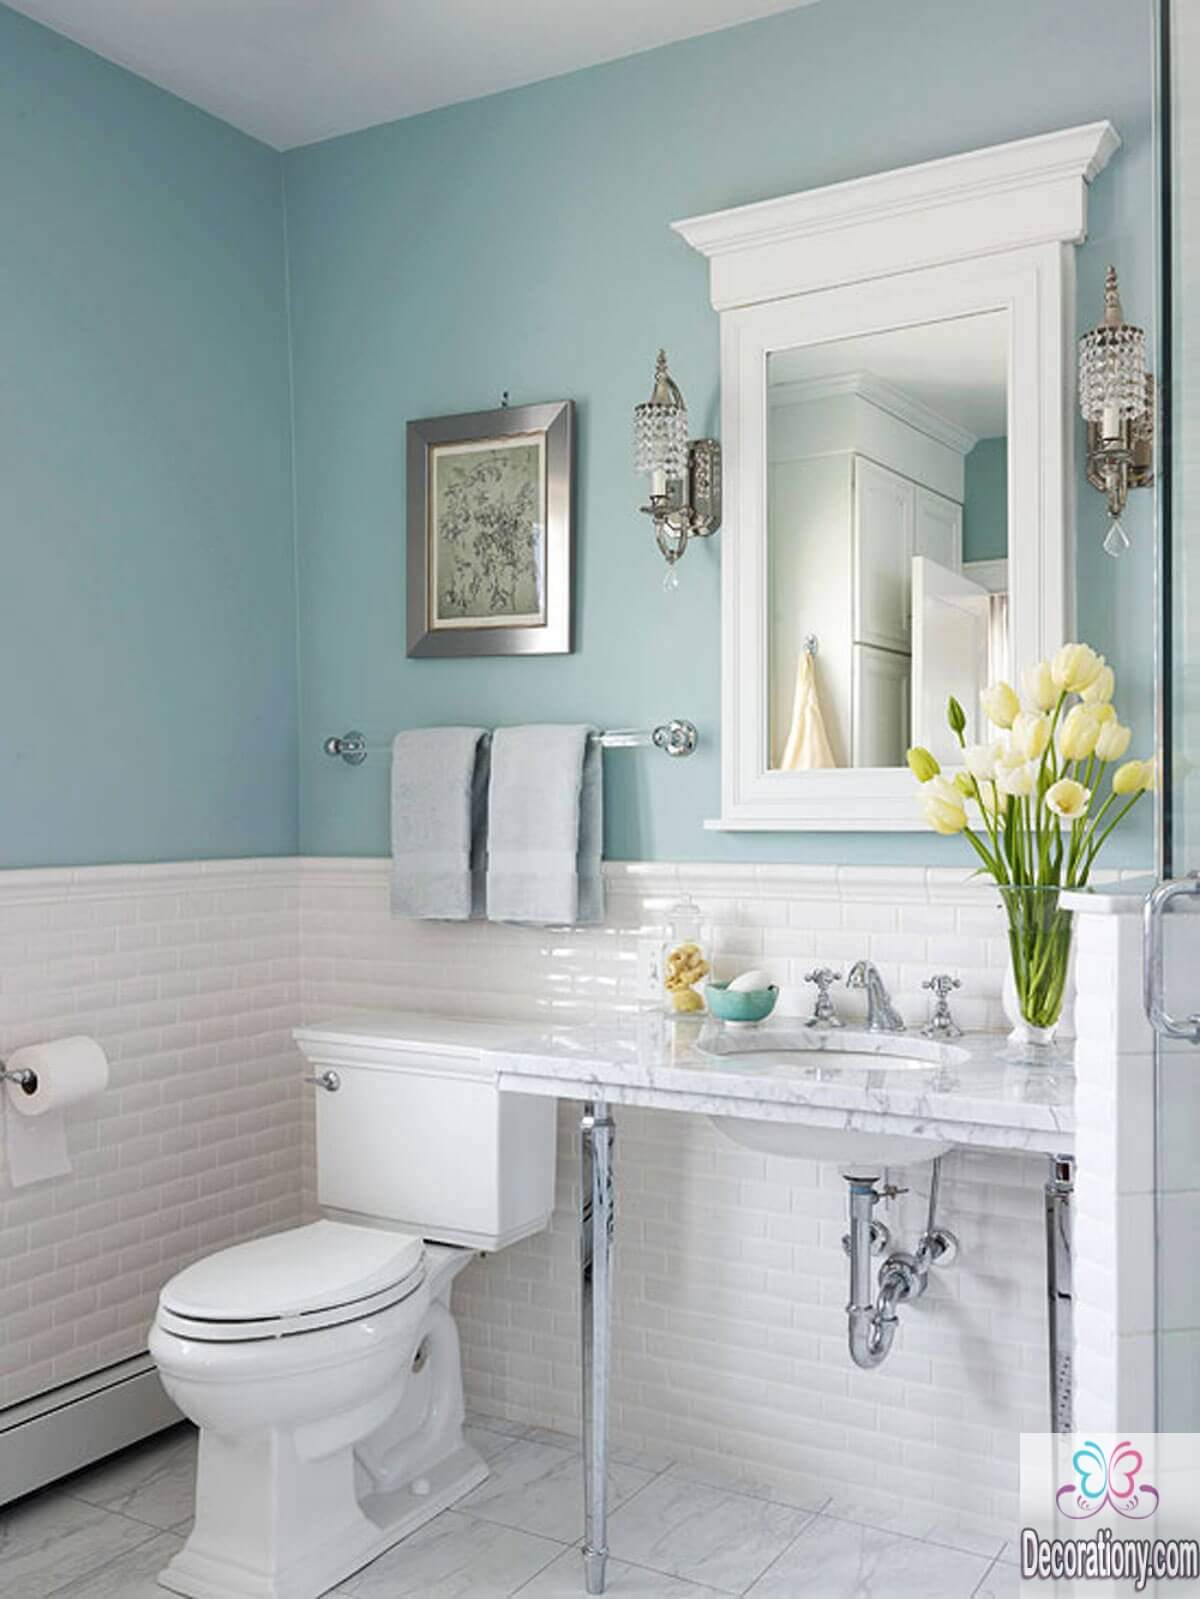 10 affordable colors for small bathrooms decoration y for Best bathrooms ideas